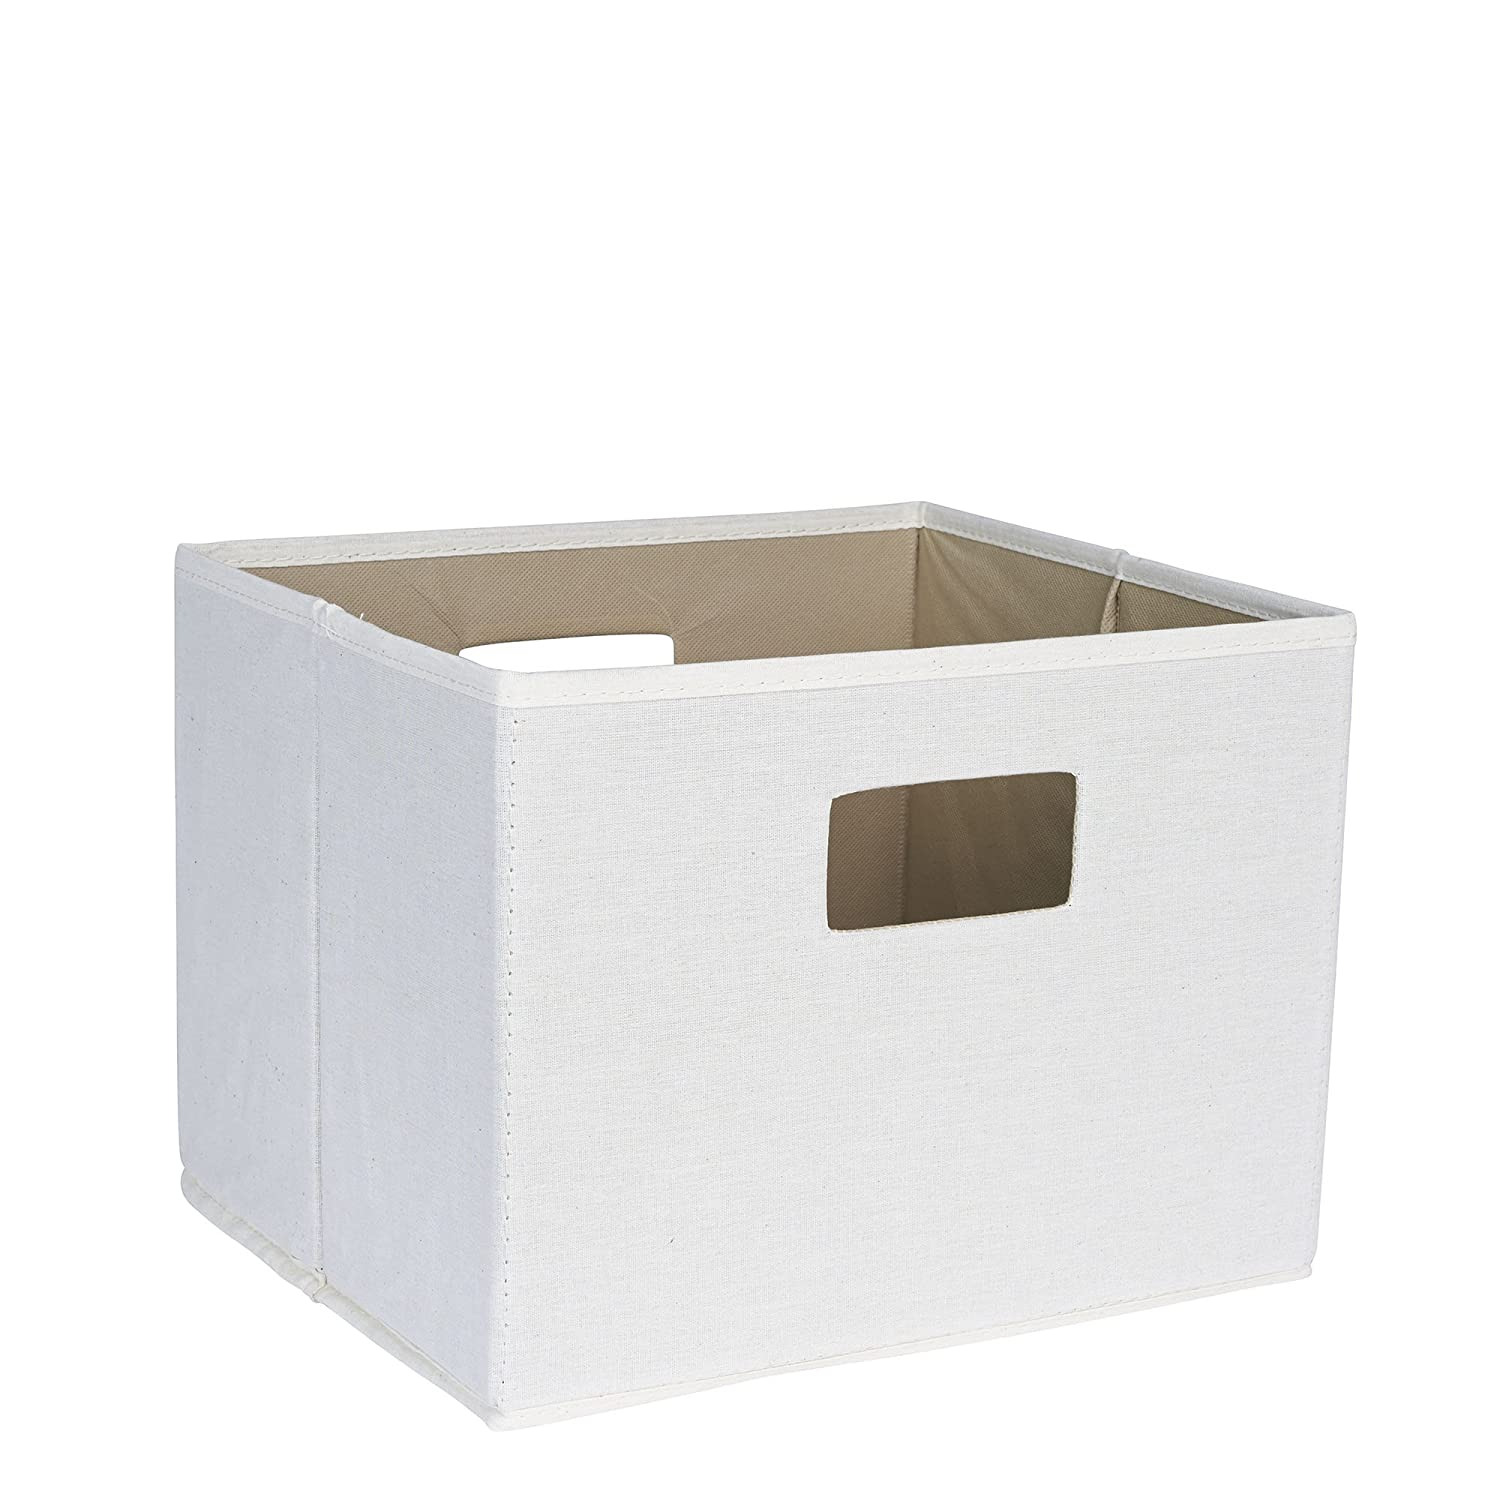 Household Essentials 119-3 Open Storage Bin with Handles | Beige Canvas | Pack of 3, 3 Pack